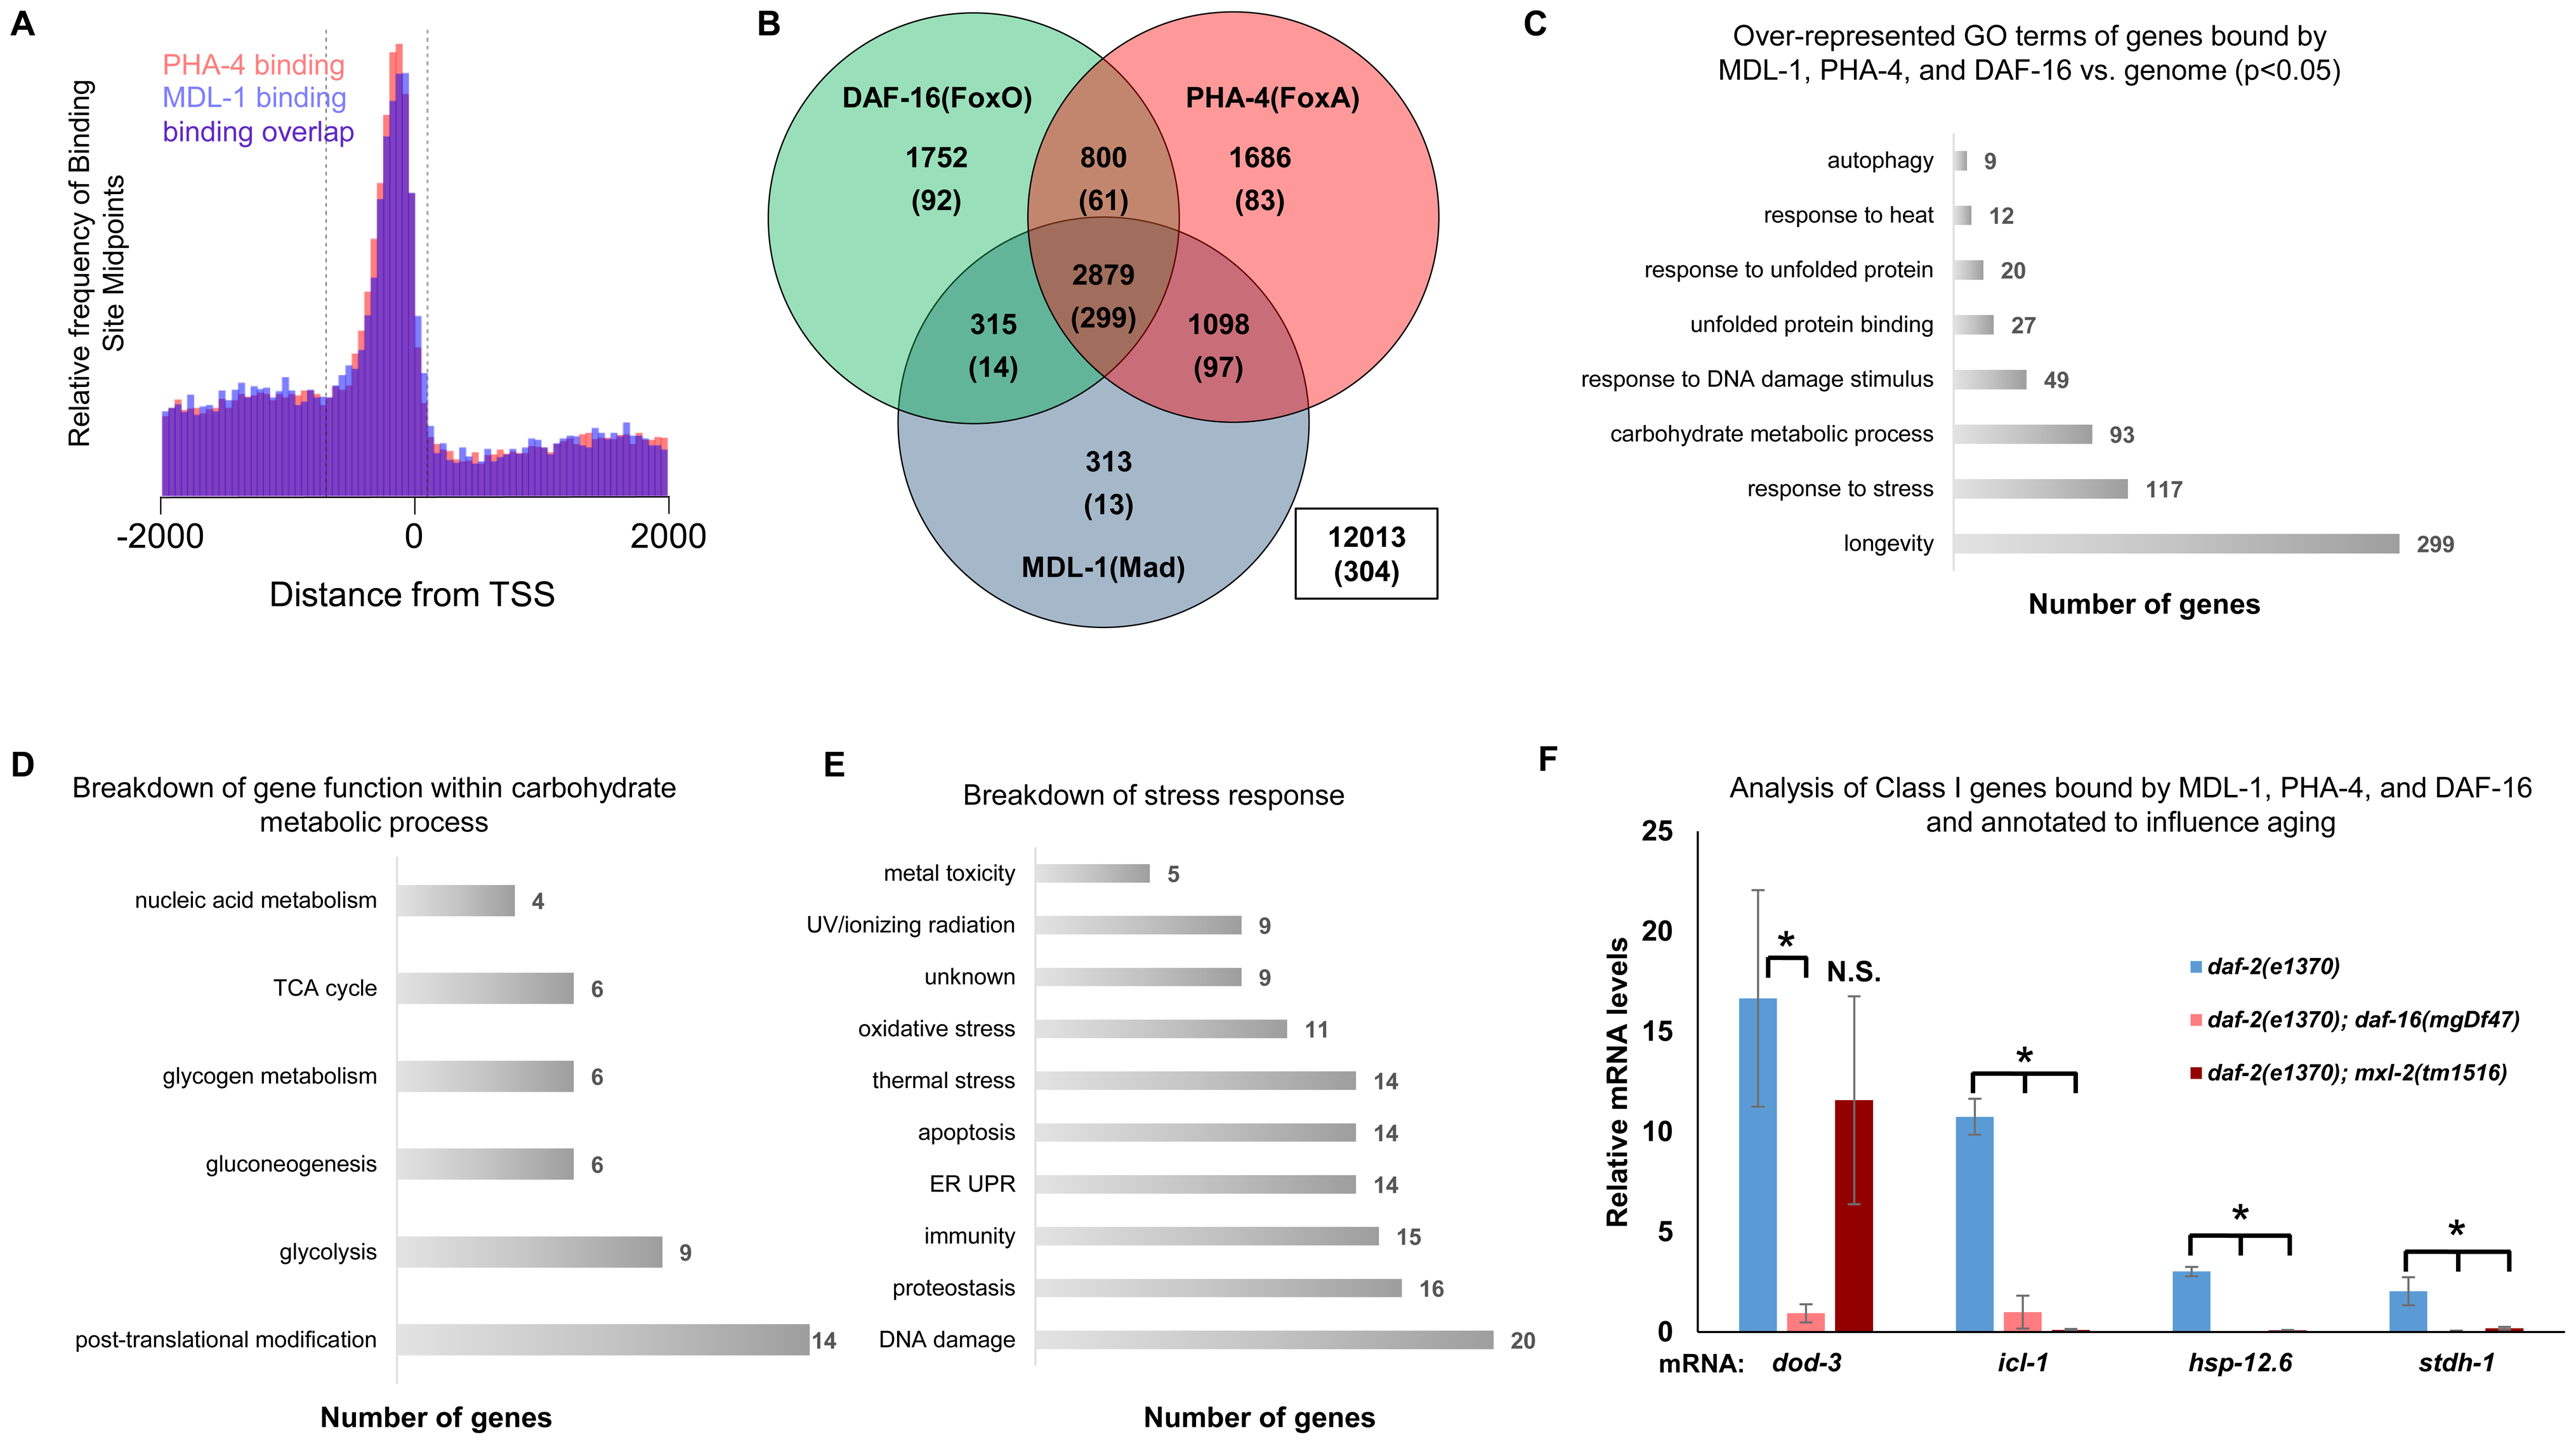 ChIP-seq data shows significant overlap amongst MDL-1, DAF-16, and PHA-4 promoter binding.